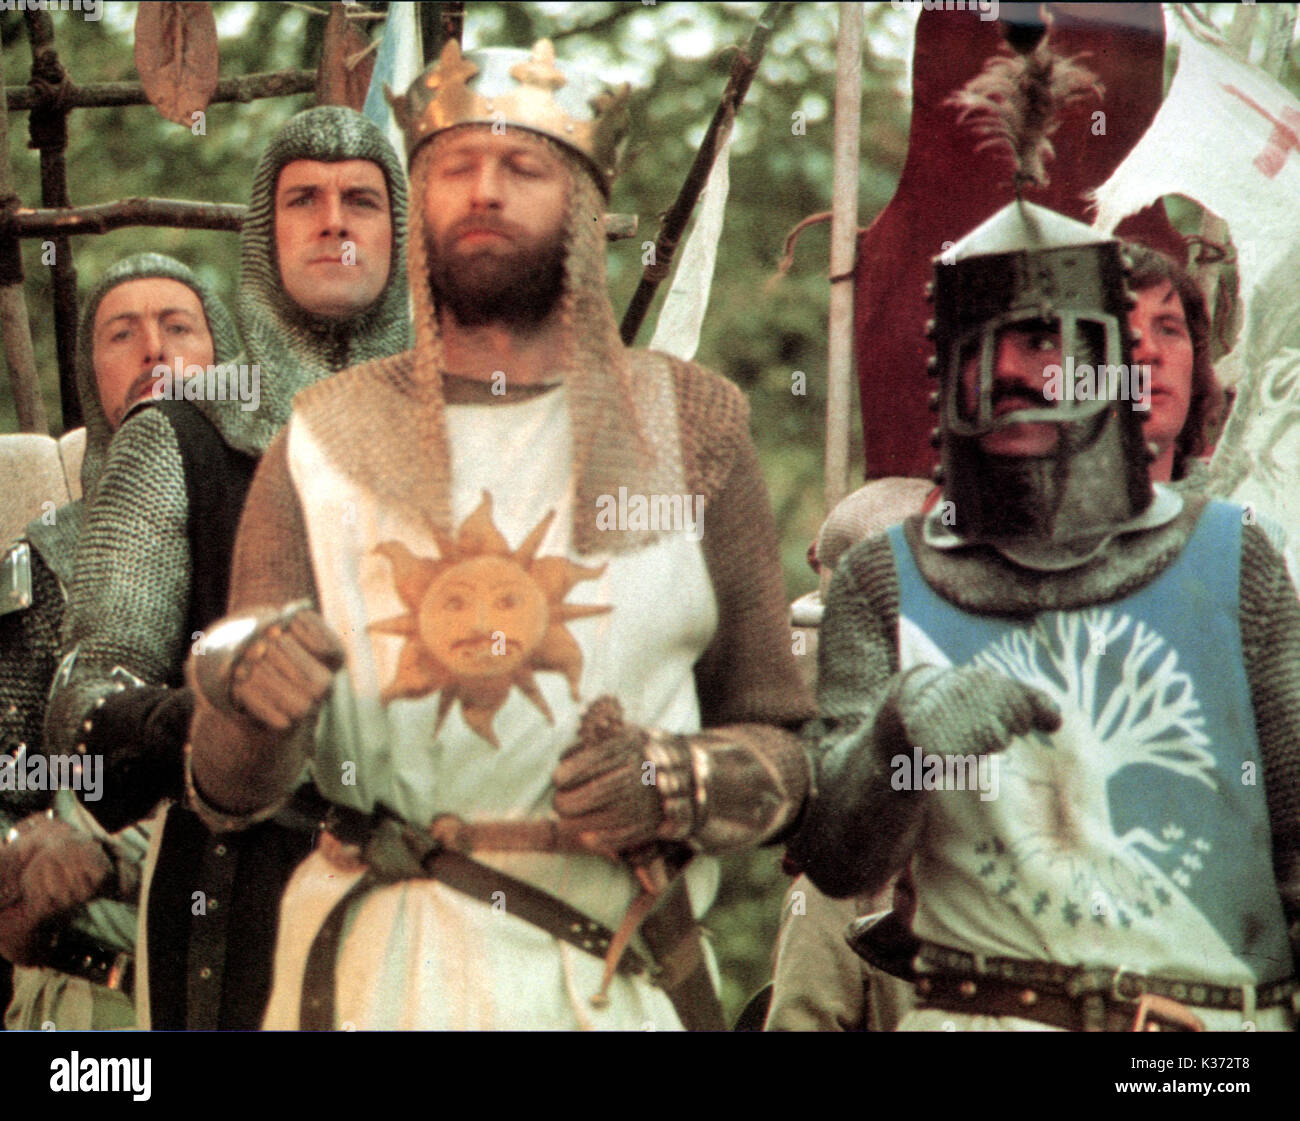 Monty Python The Royal Philharmonic Orchestra Goes To The Bathroom: Monty Python And The Holy Grail Eric Idle Stock Photos